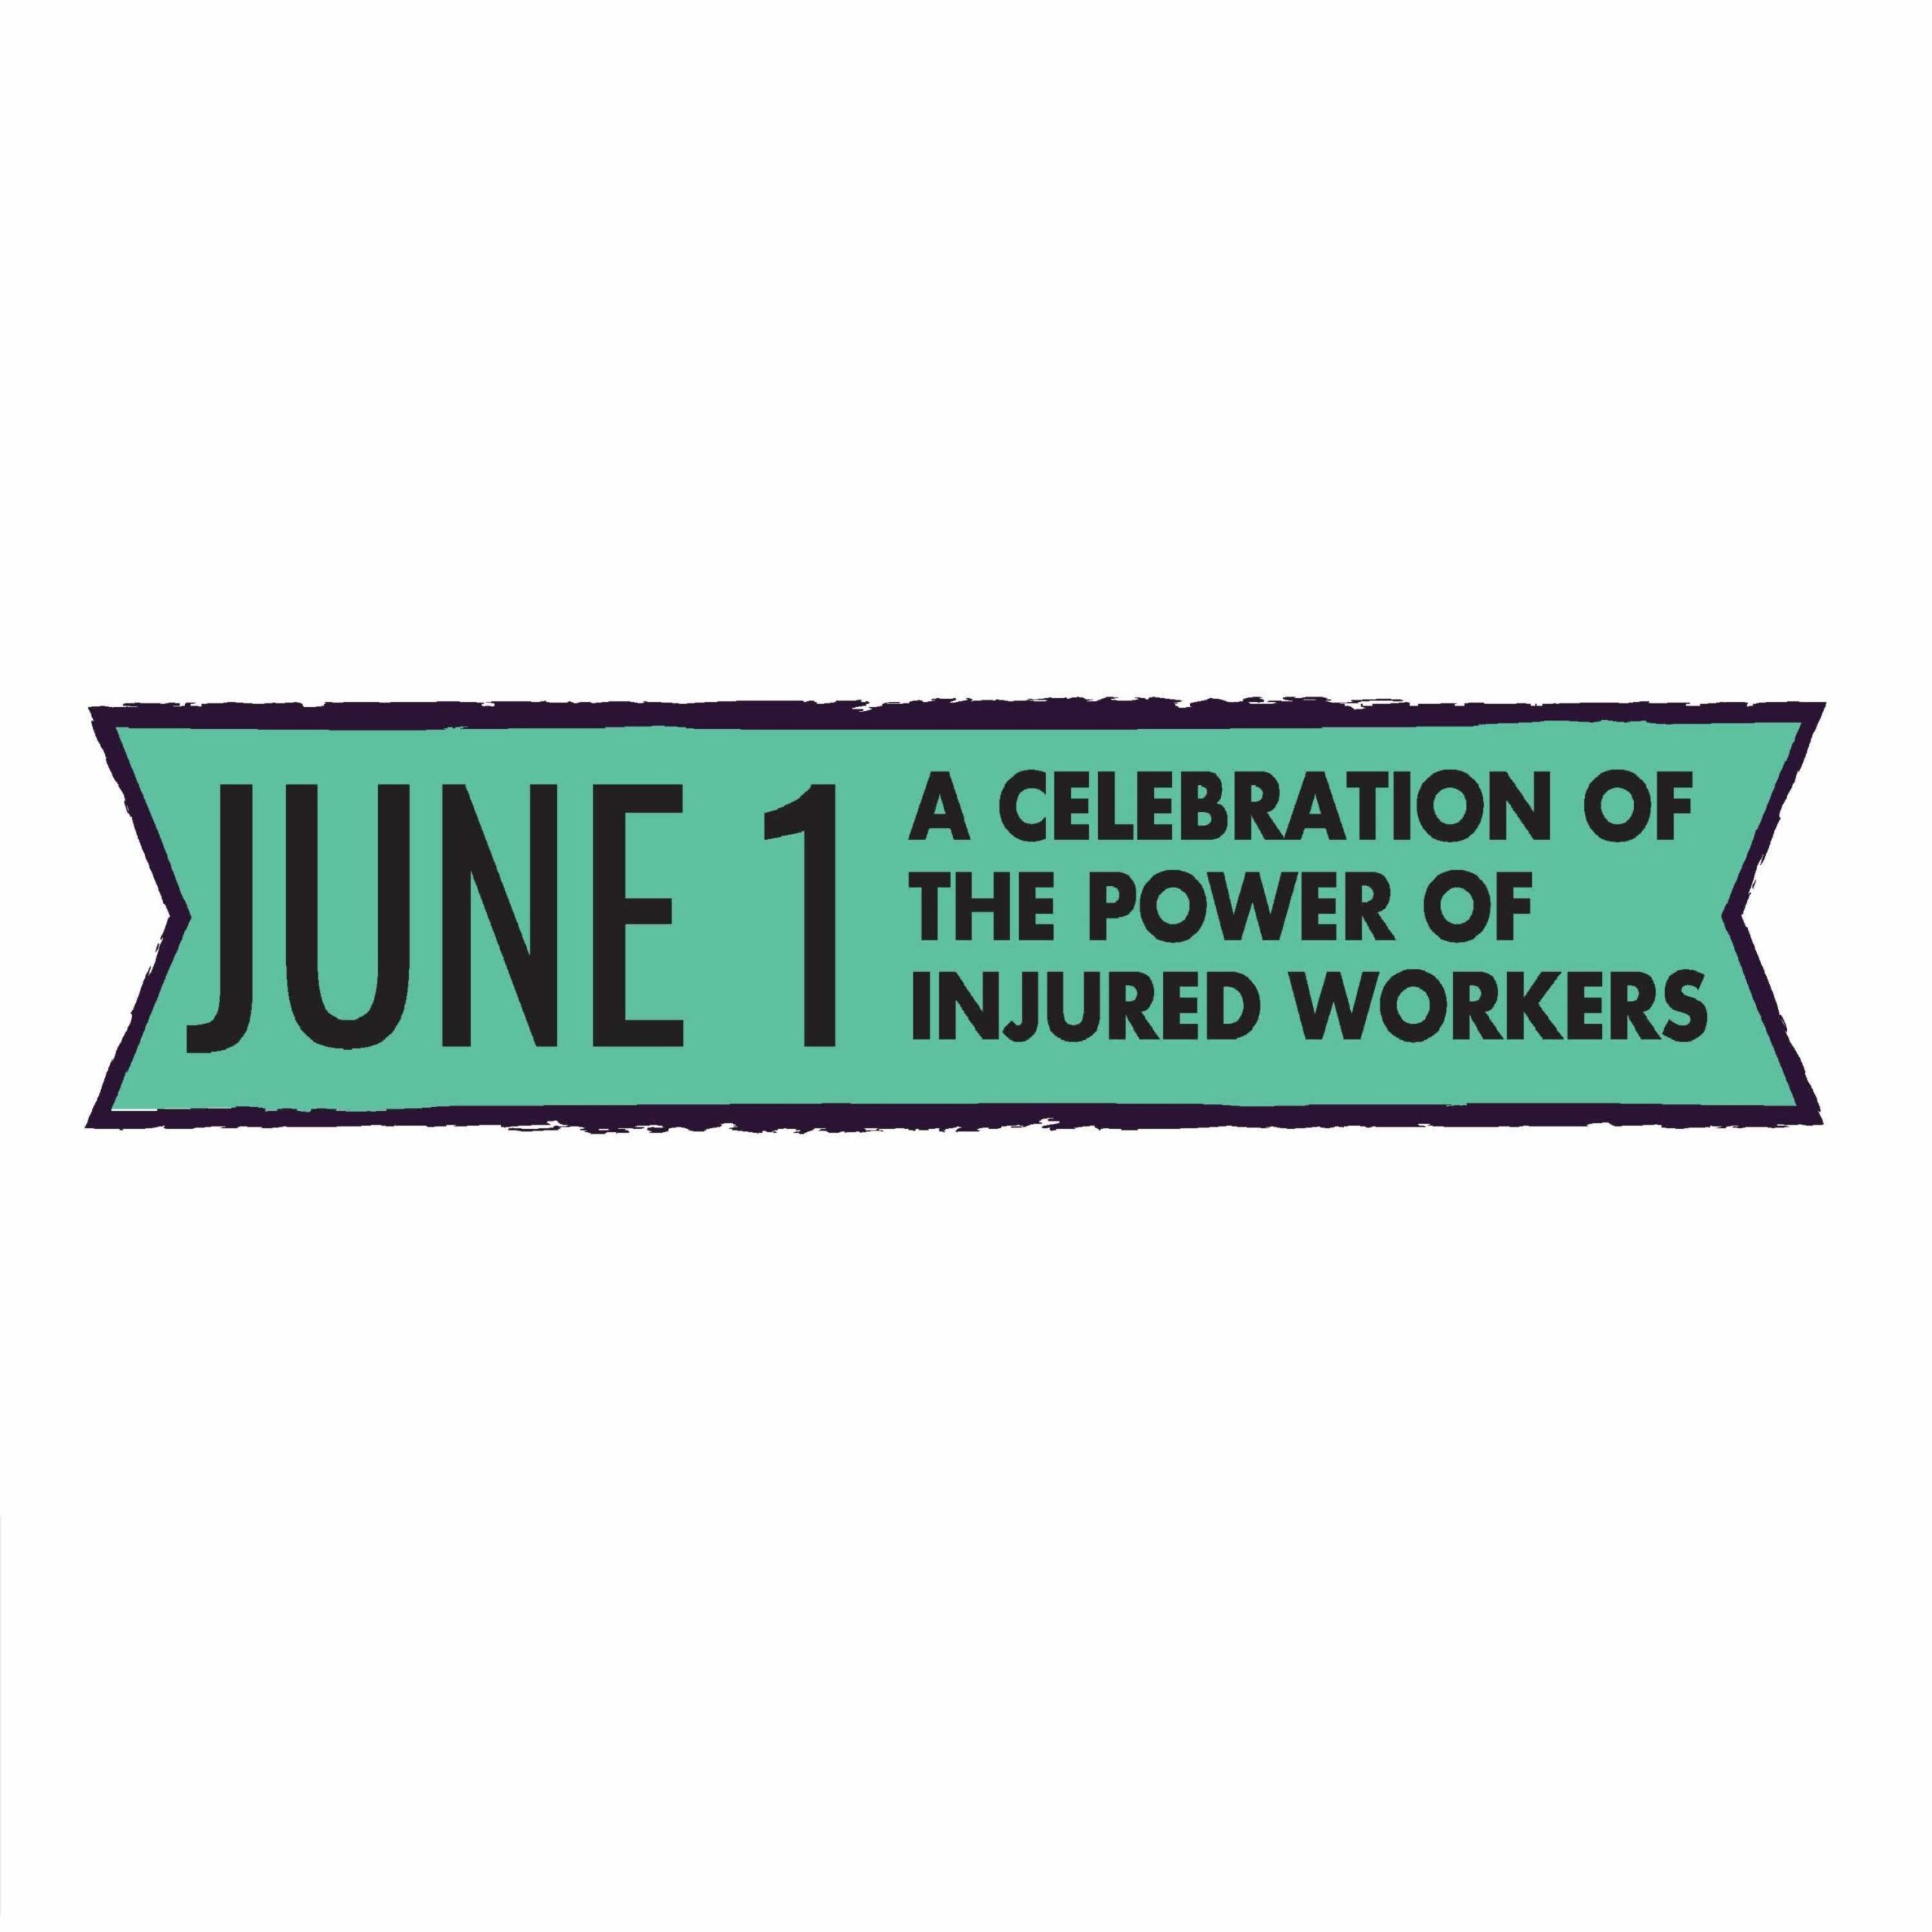 June 1 - A Celebration of the Power of Injured Workers